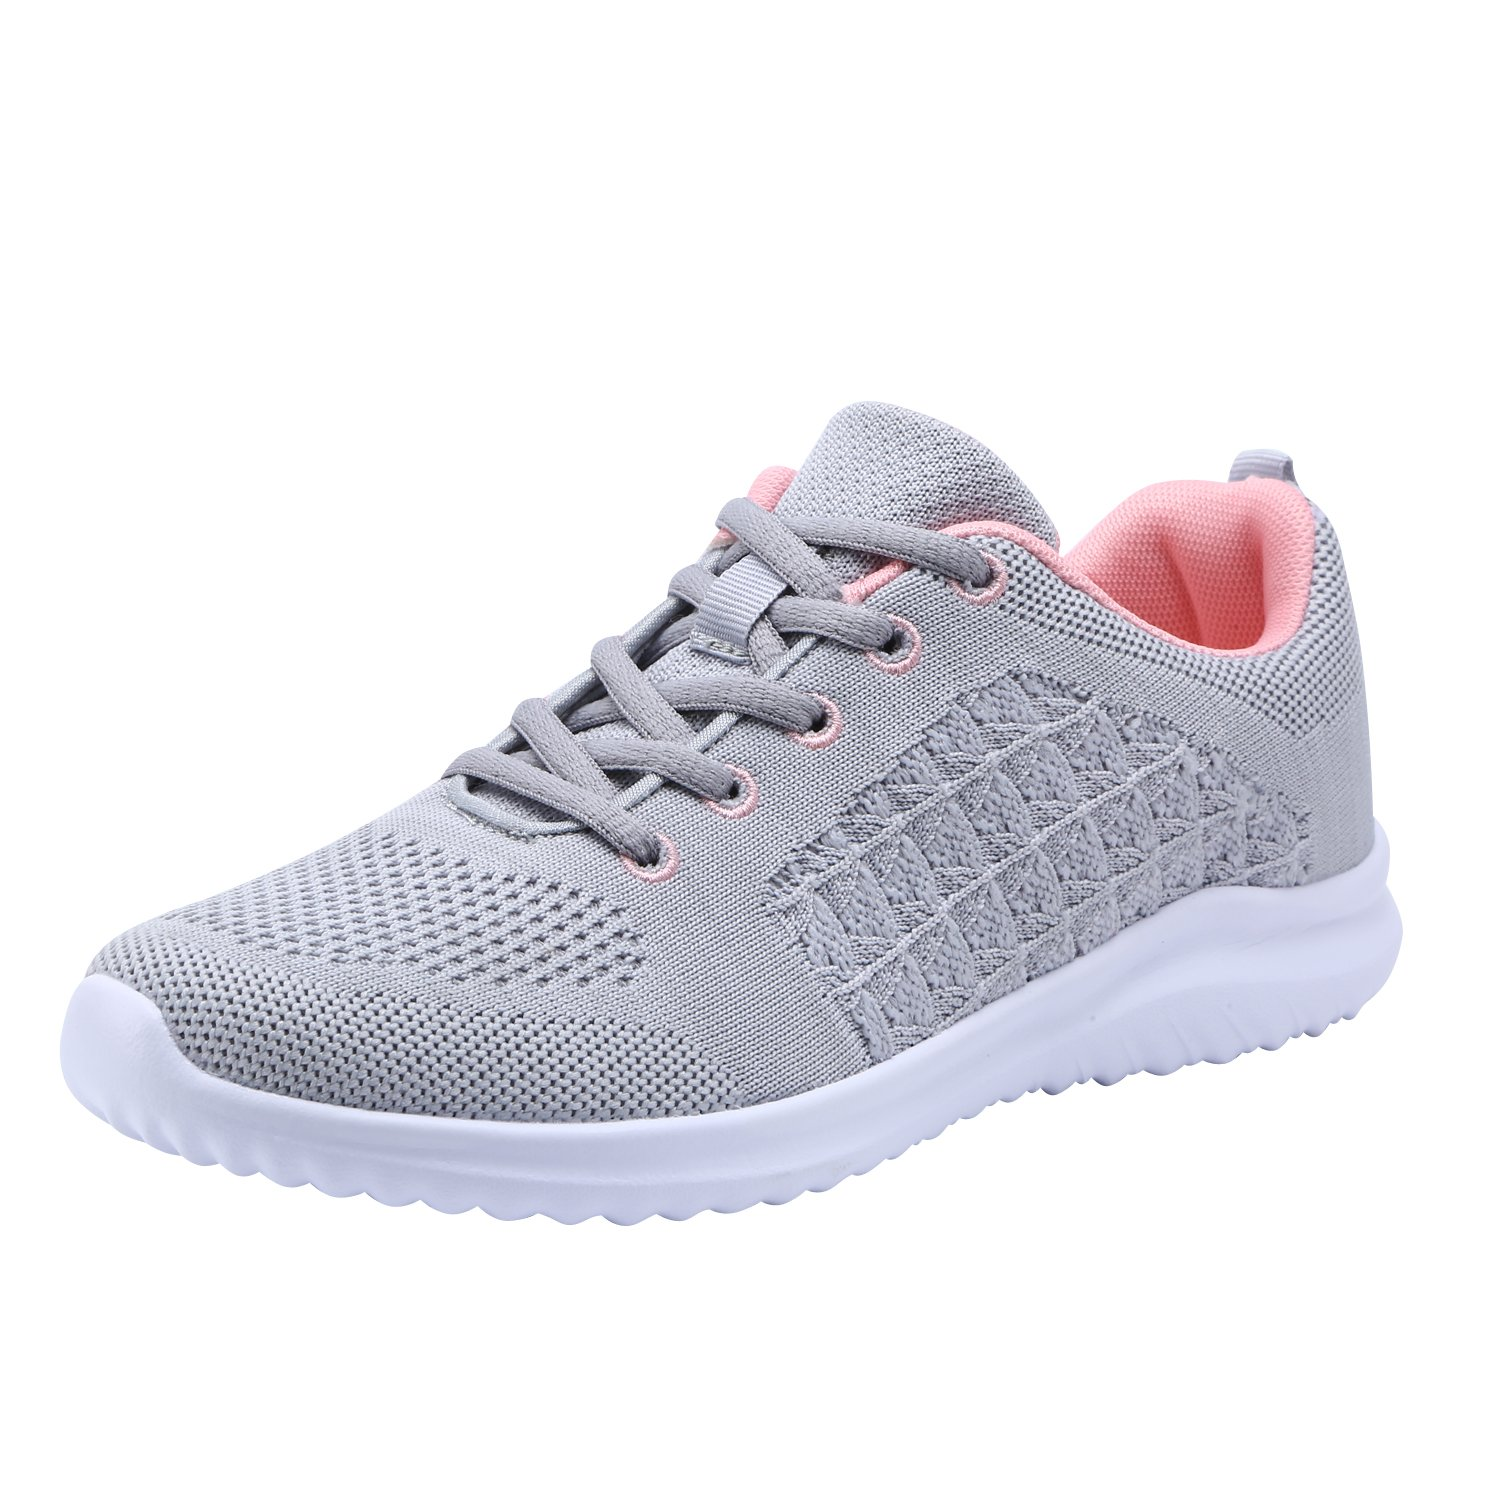 YILAN Women's Fashion Sneakers Casual Sport Shoes B07F1MFSG2 8.5 M US|New Grey-5